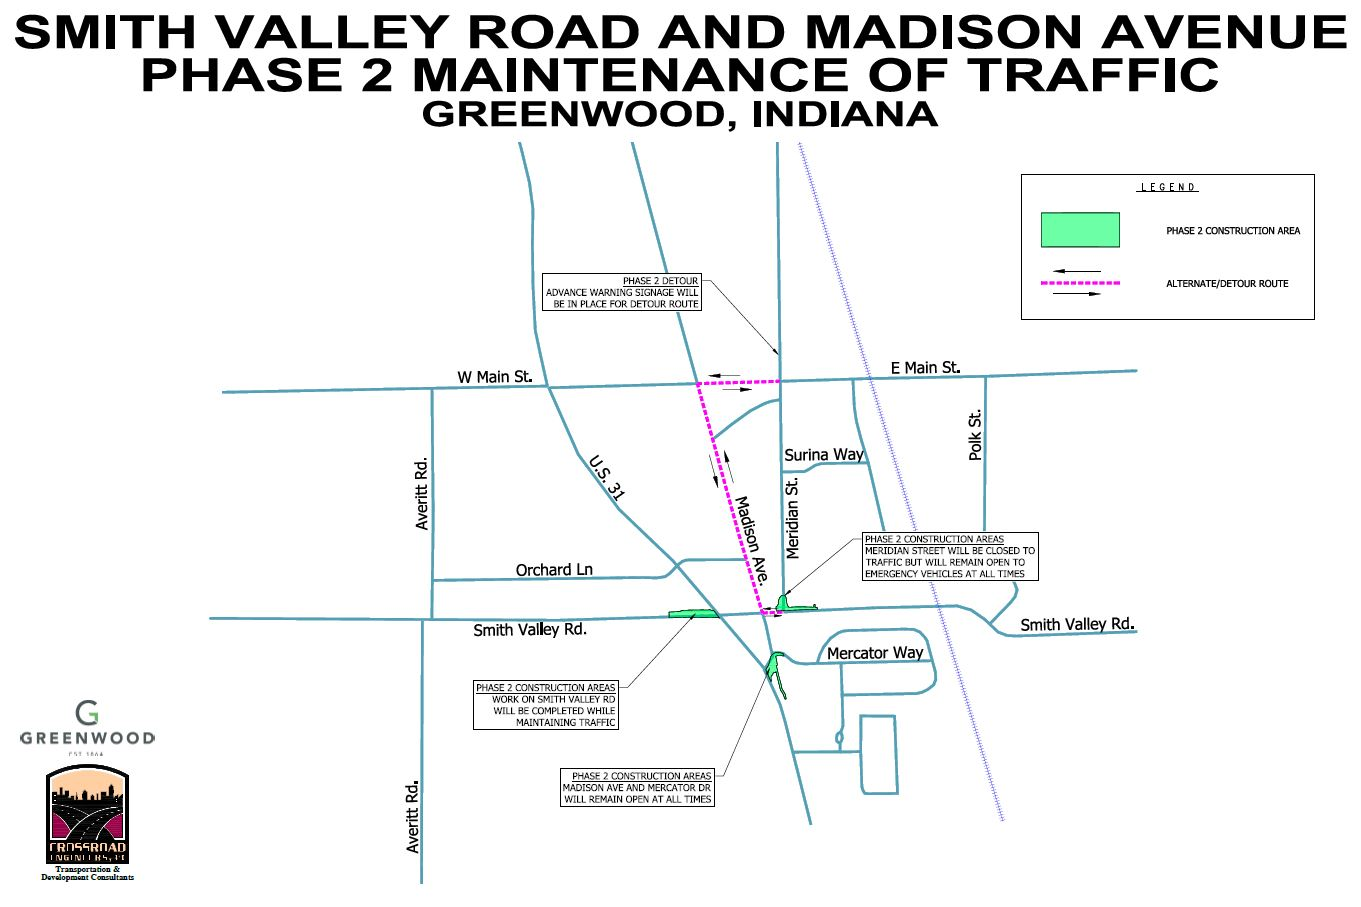 Smith Valley Road/Madison Avenue Phase 2 – Detour Route